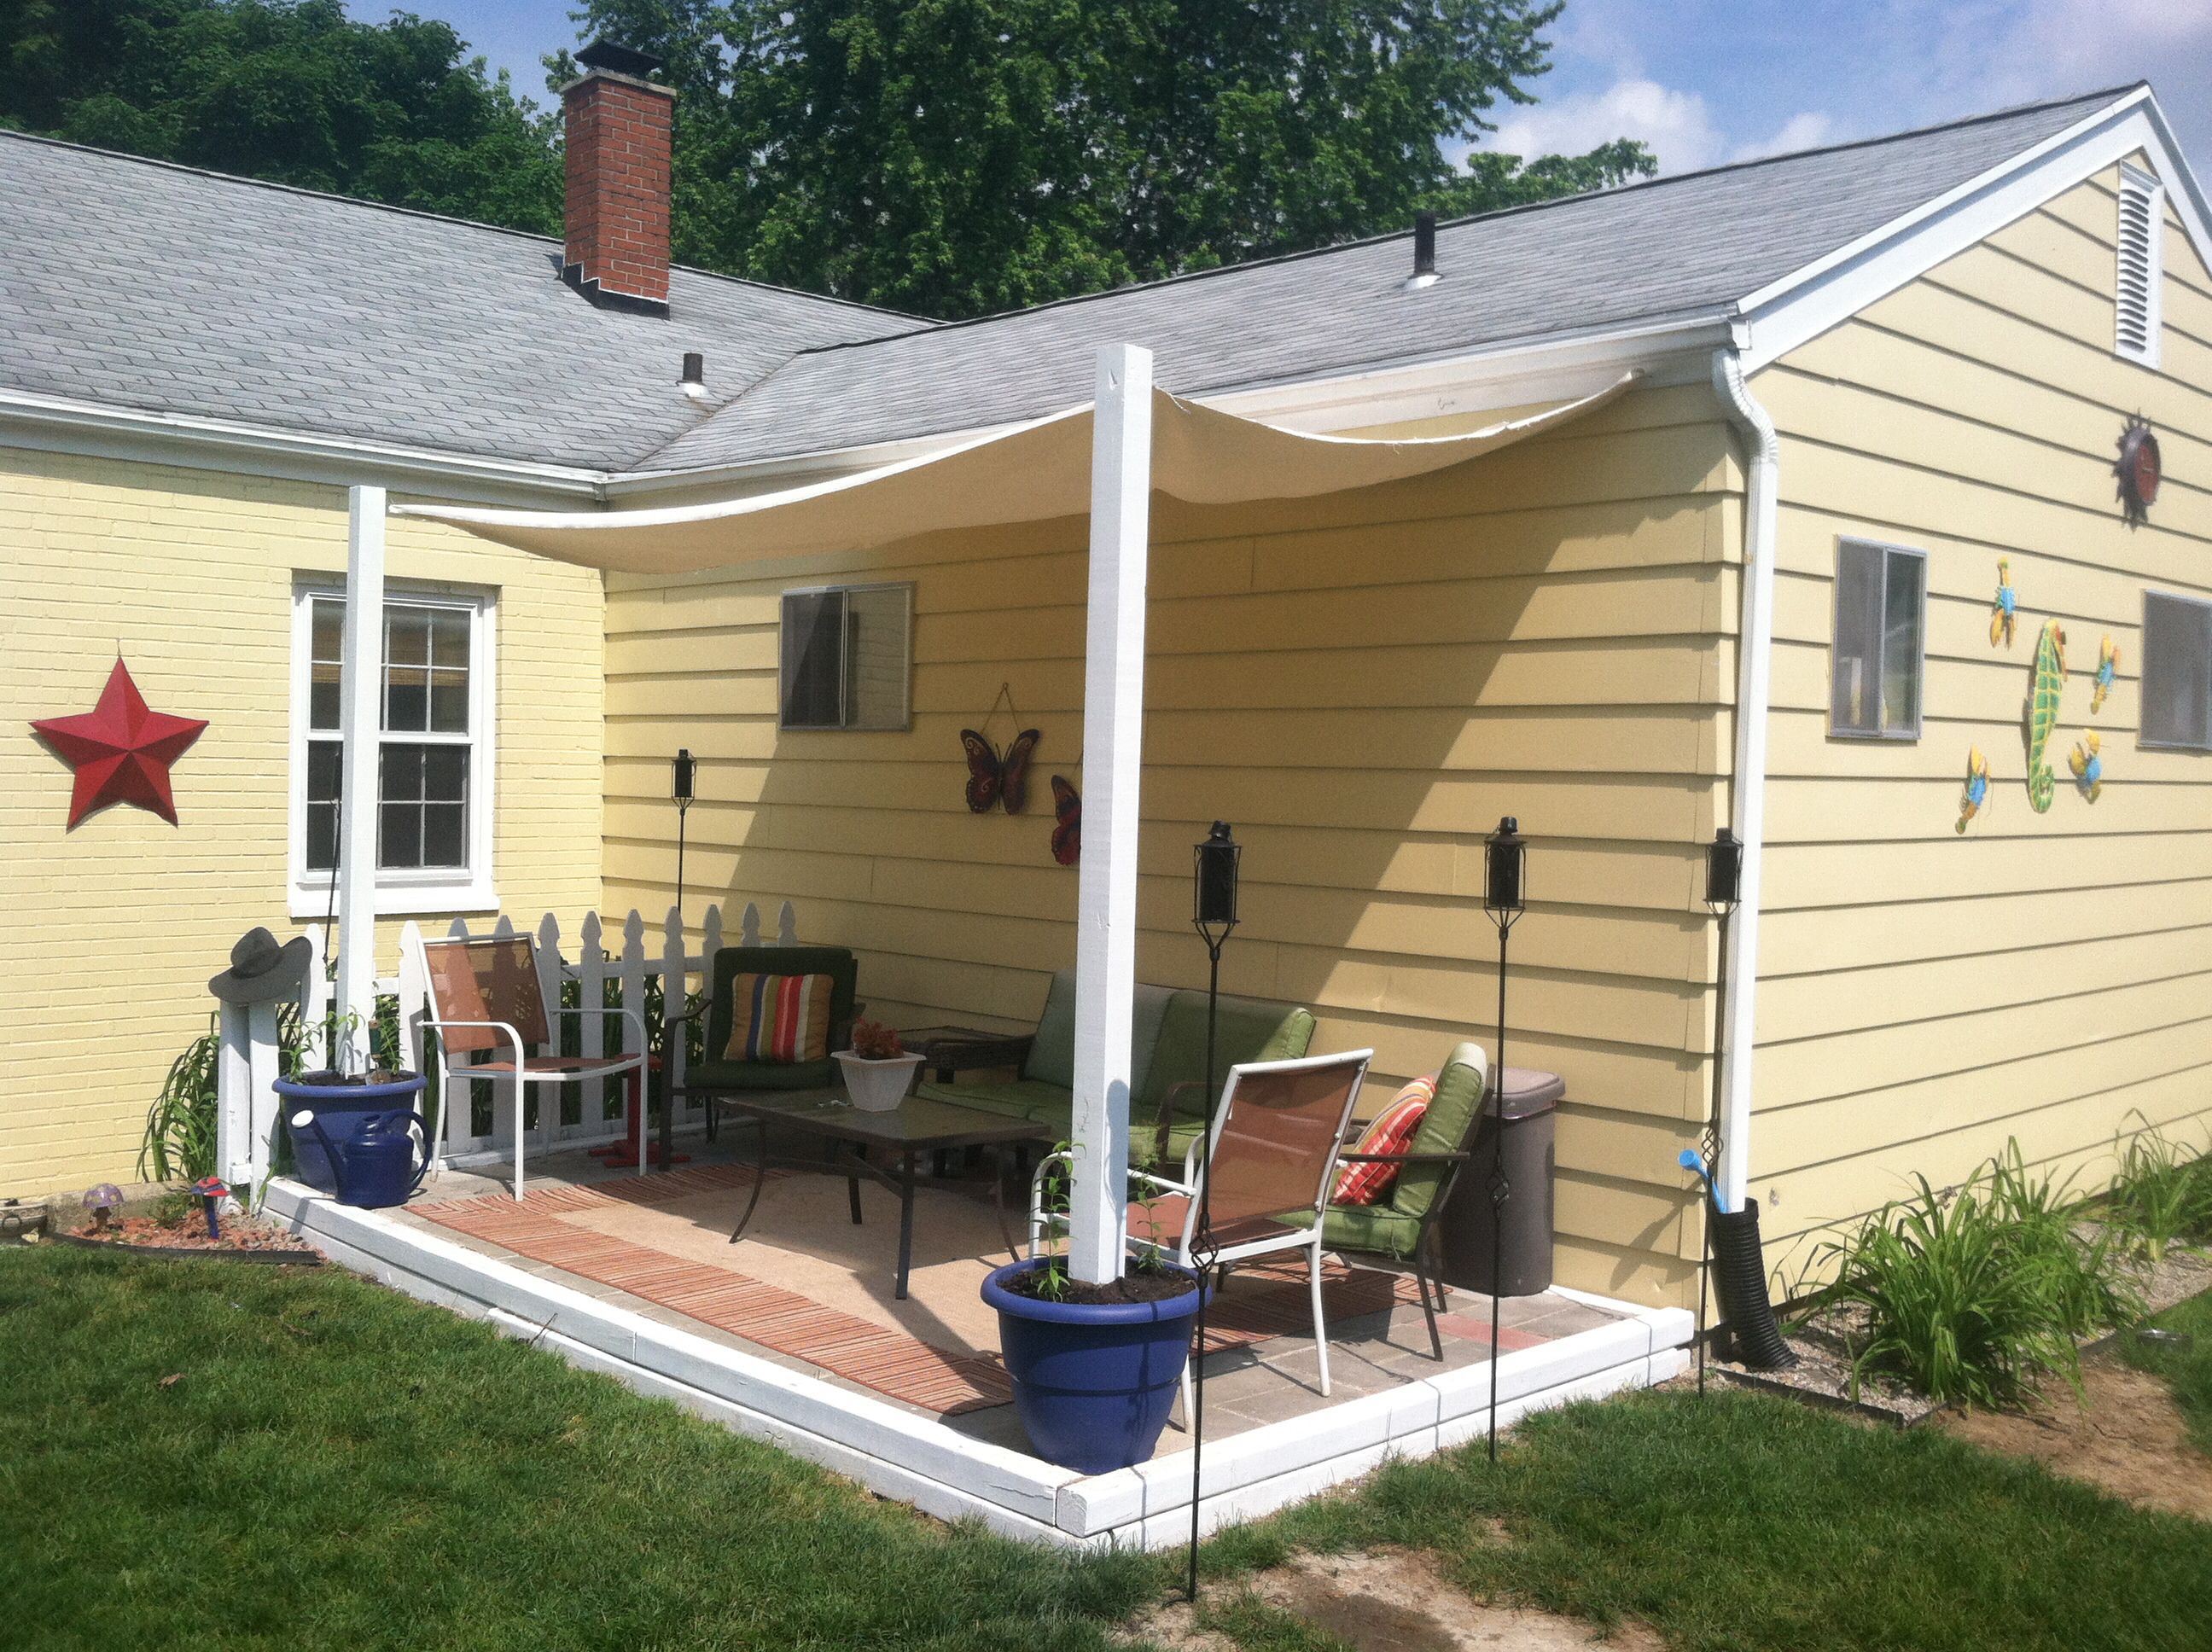 Diy Shade Canopy Using Planters Fence Posts Buckets Quick